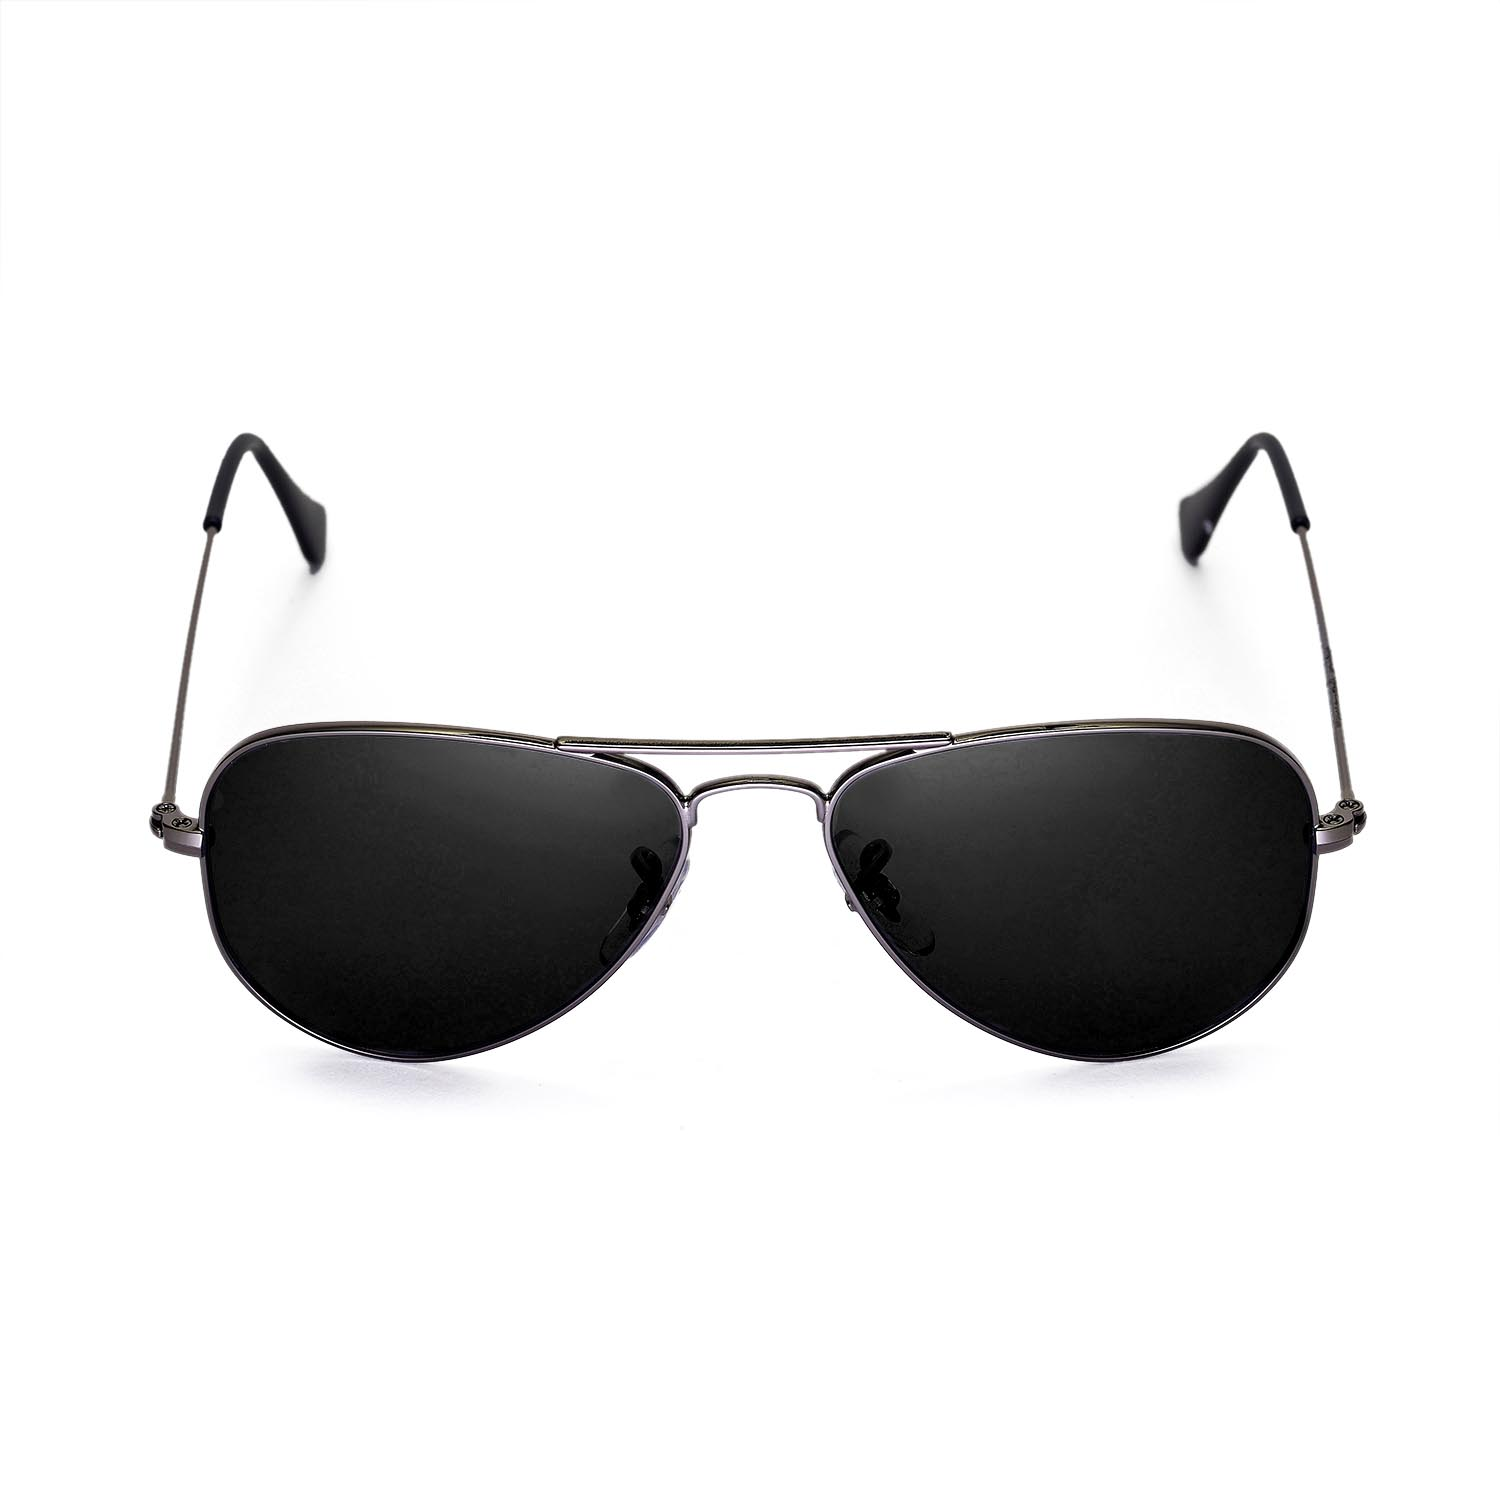 black ray ban aviators  new walleva polarized black lenses for ray ban aviator rb3044 52mm